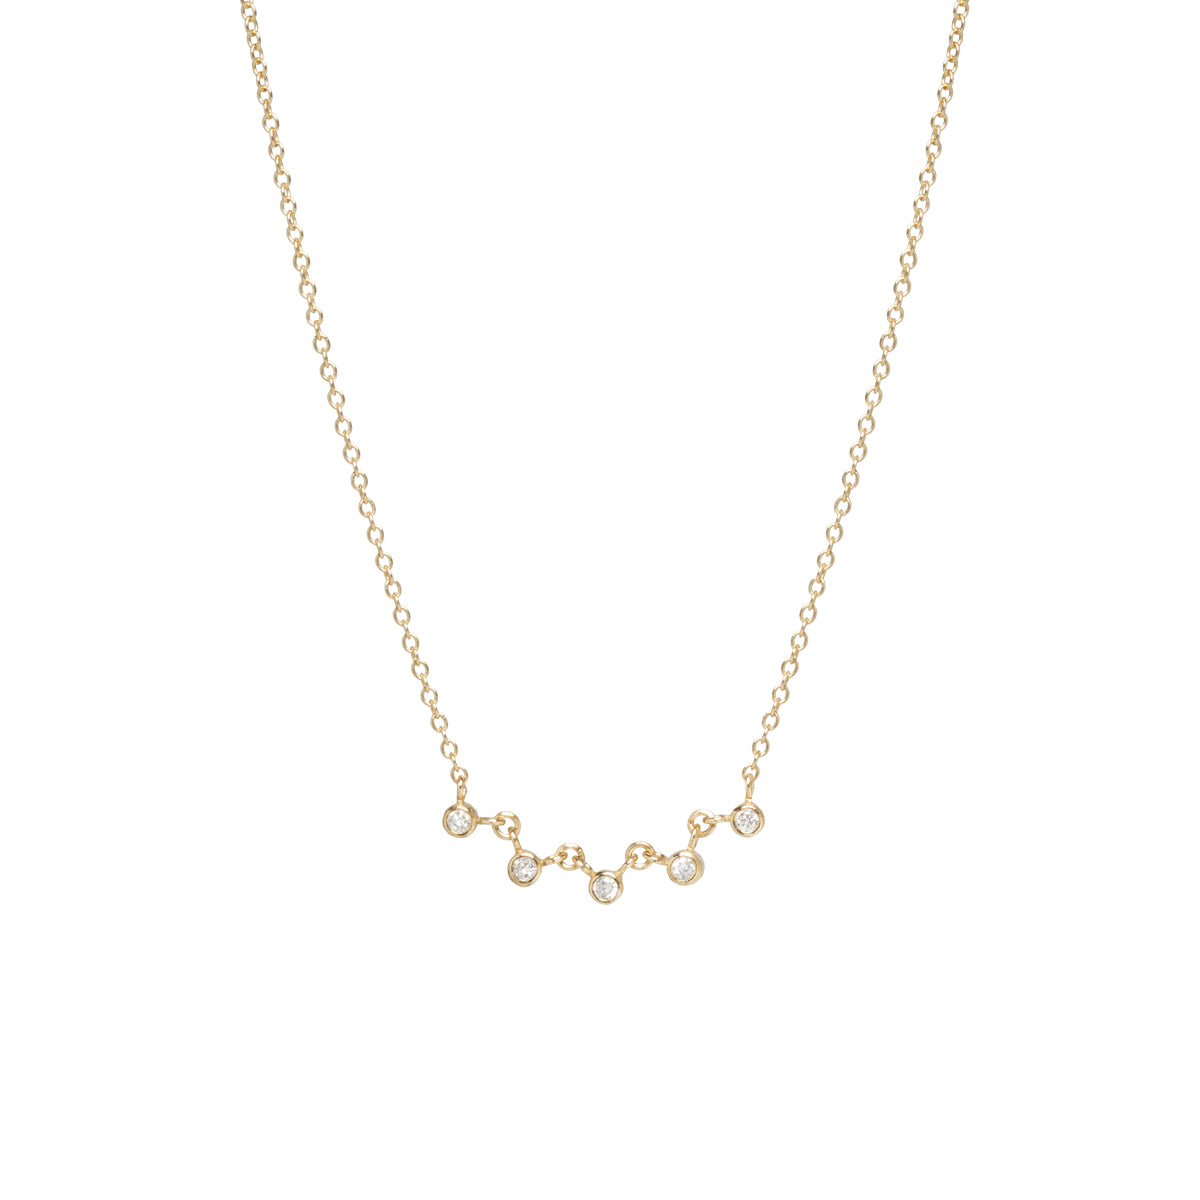 14k linked 5 bezel diamond necklace